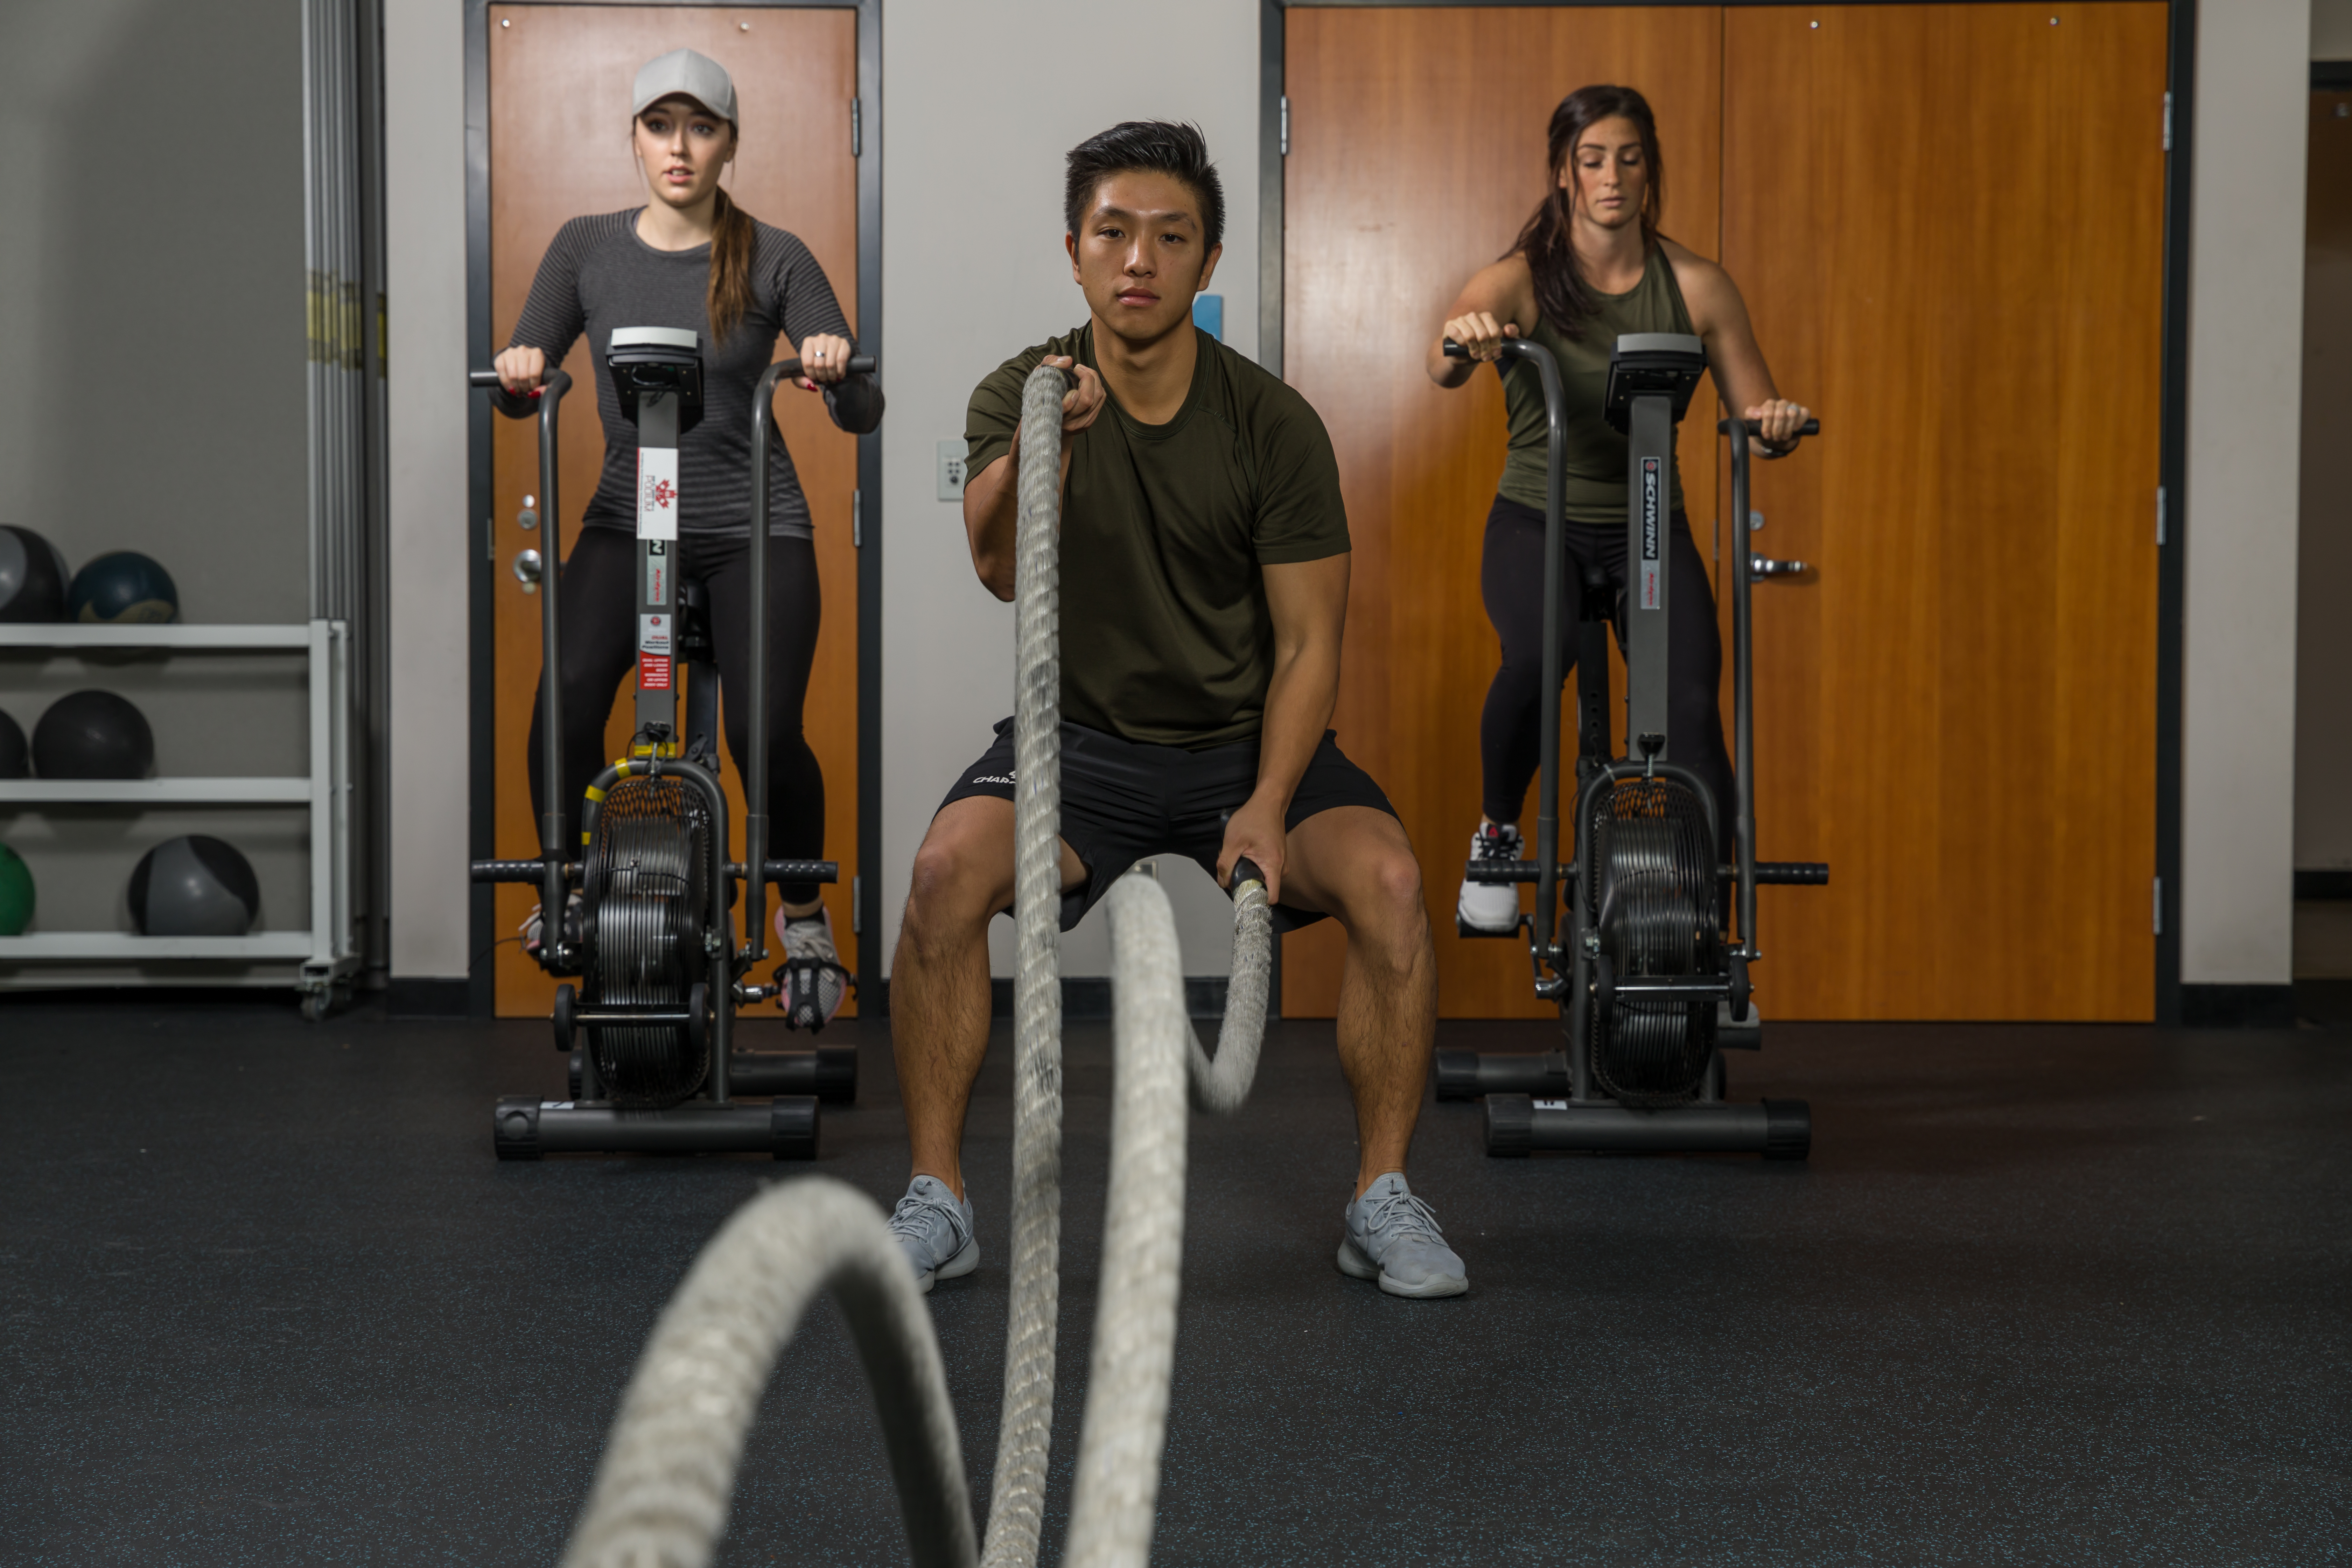 Two students using exercise equipment and one using ropes